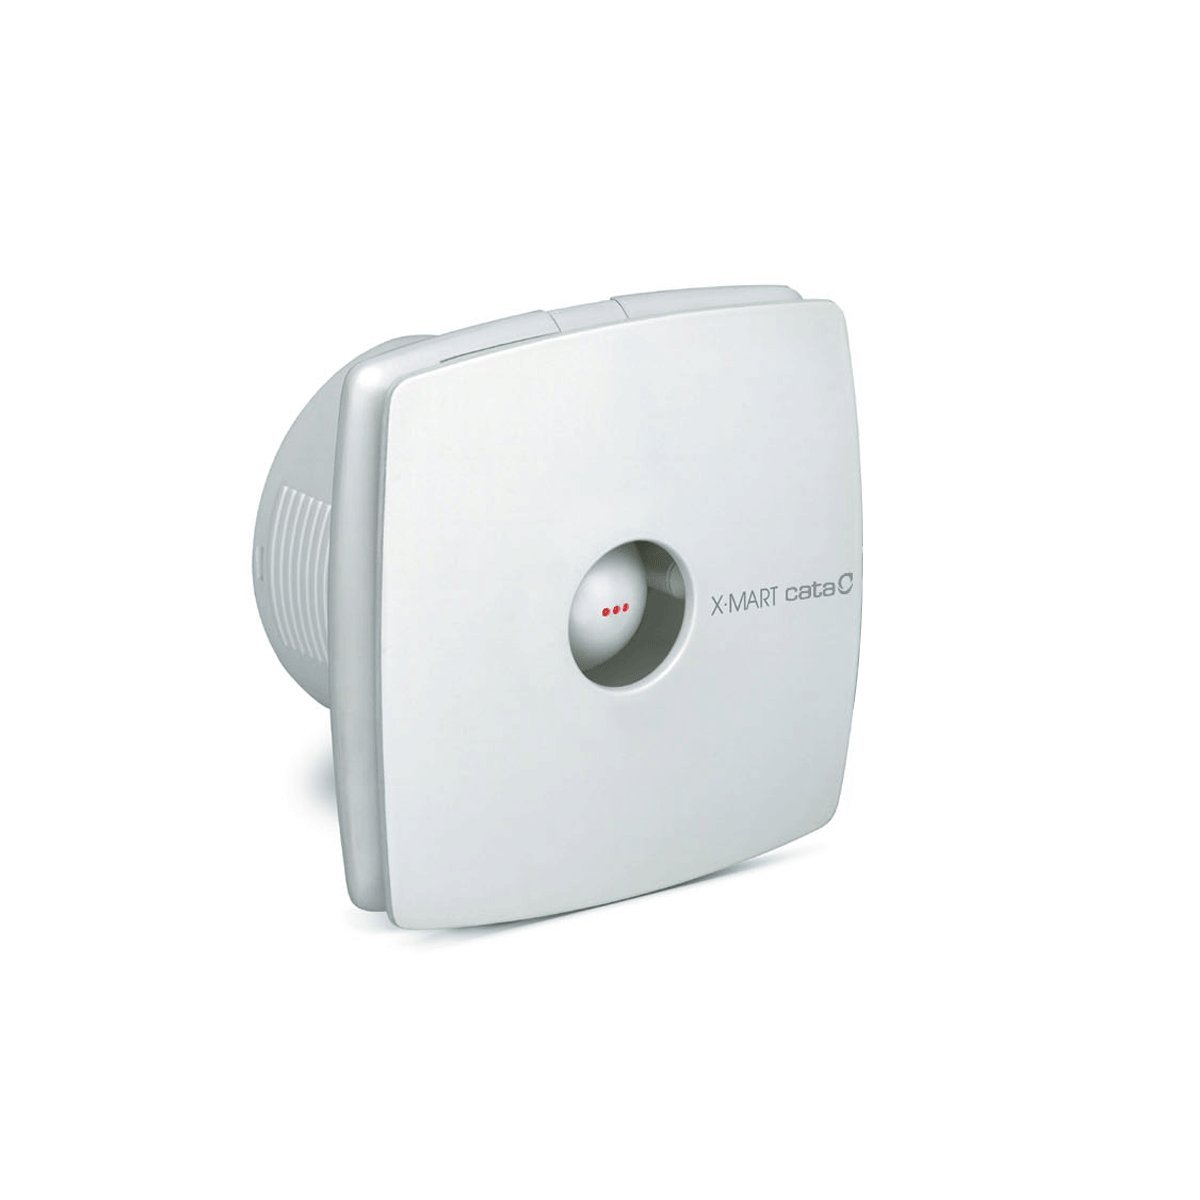 CATA X-MART 15 25W Color blanco - Ventilador (Color blanco, 25 W, 220-240V, 50/60Hz, 194 mm, 157,5 mm, 194 mm) 01030000